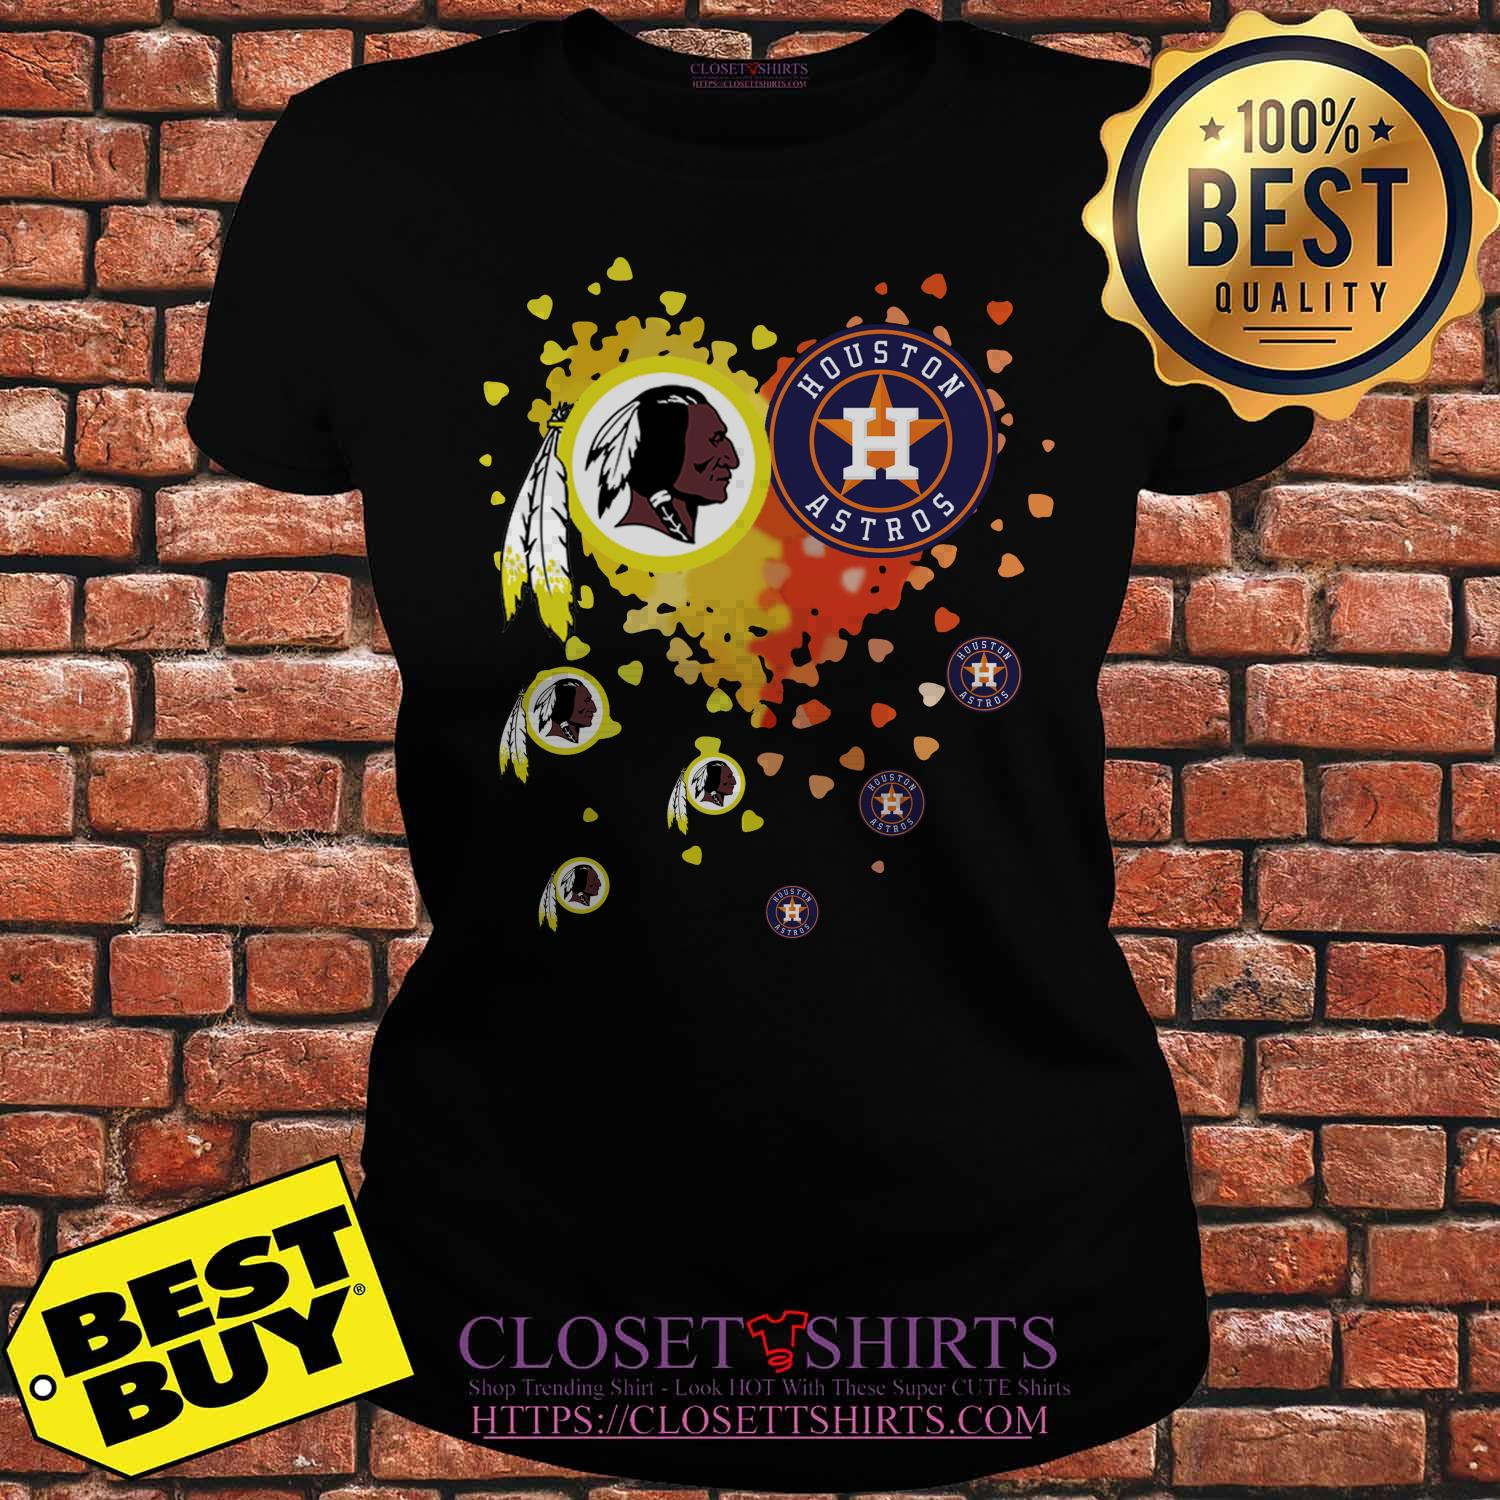 Washington Redskins Houston Astros It's In My Heart ladies tee